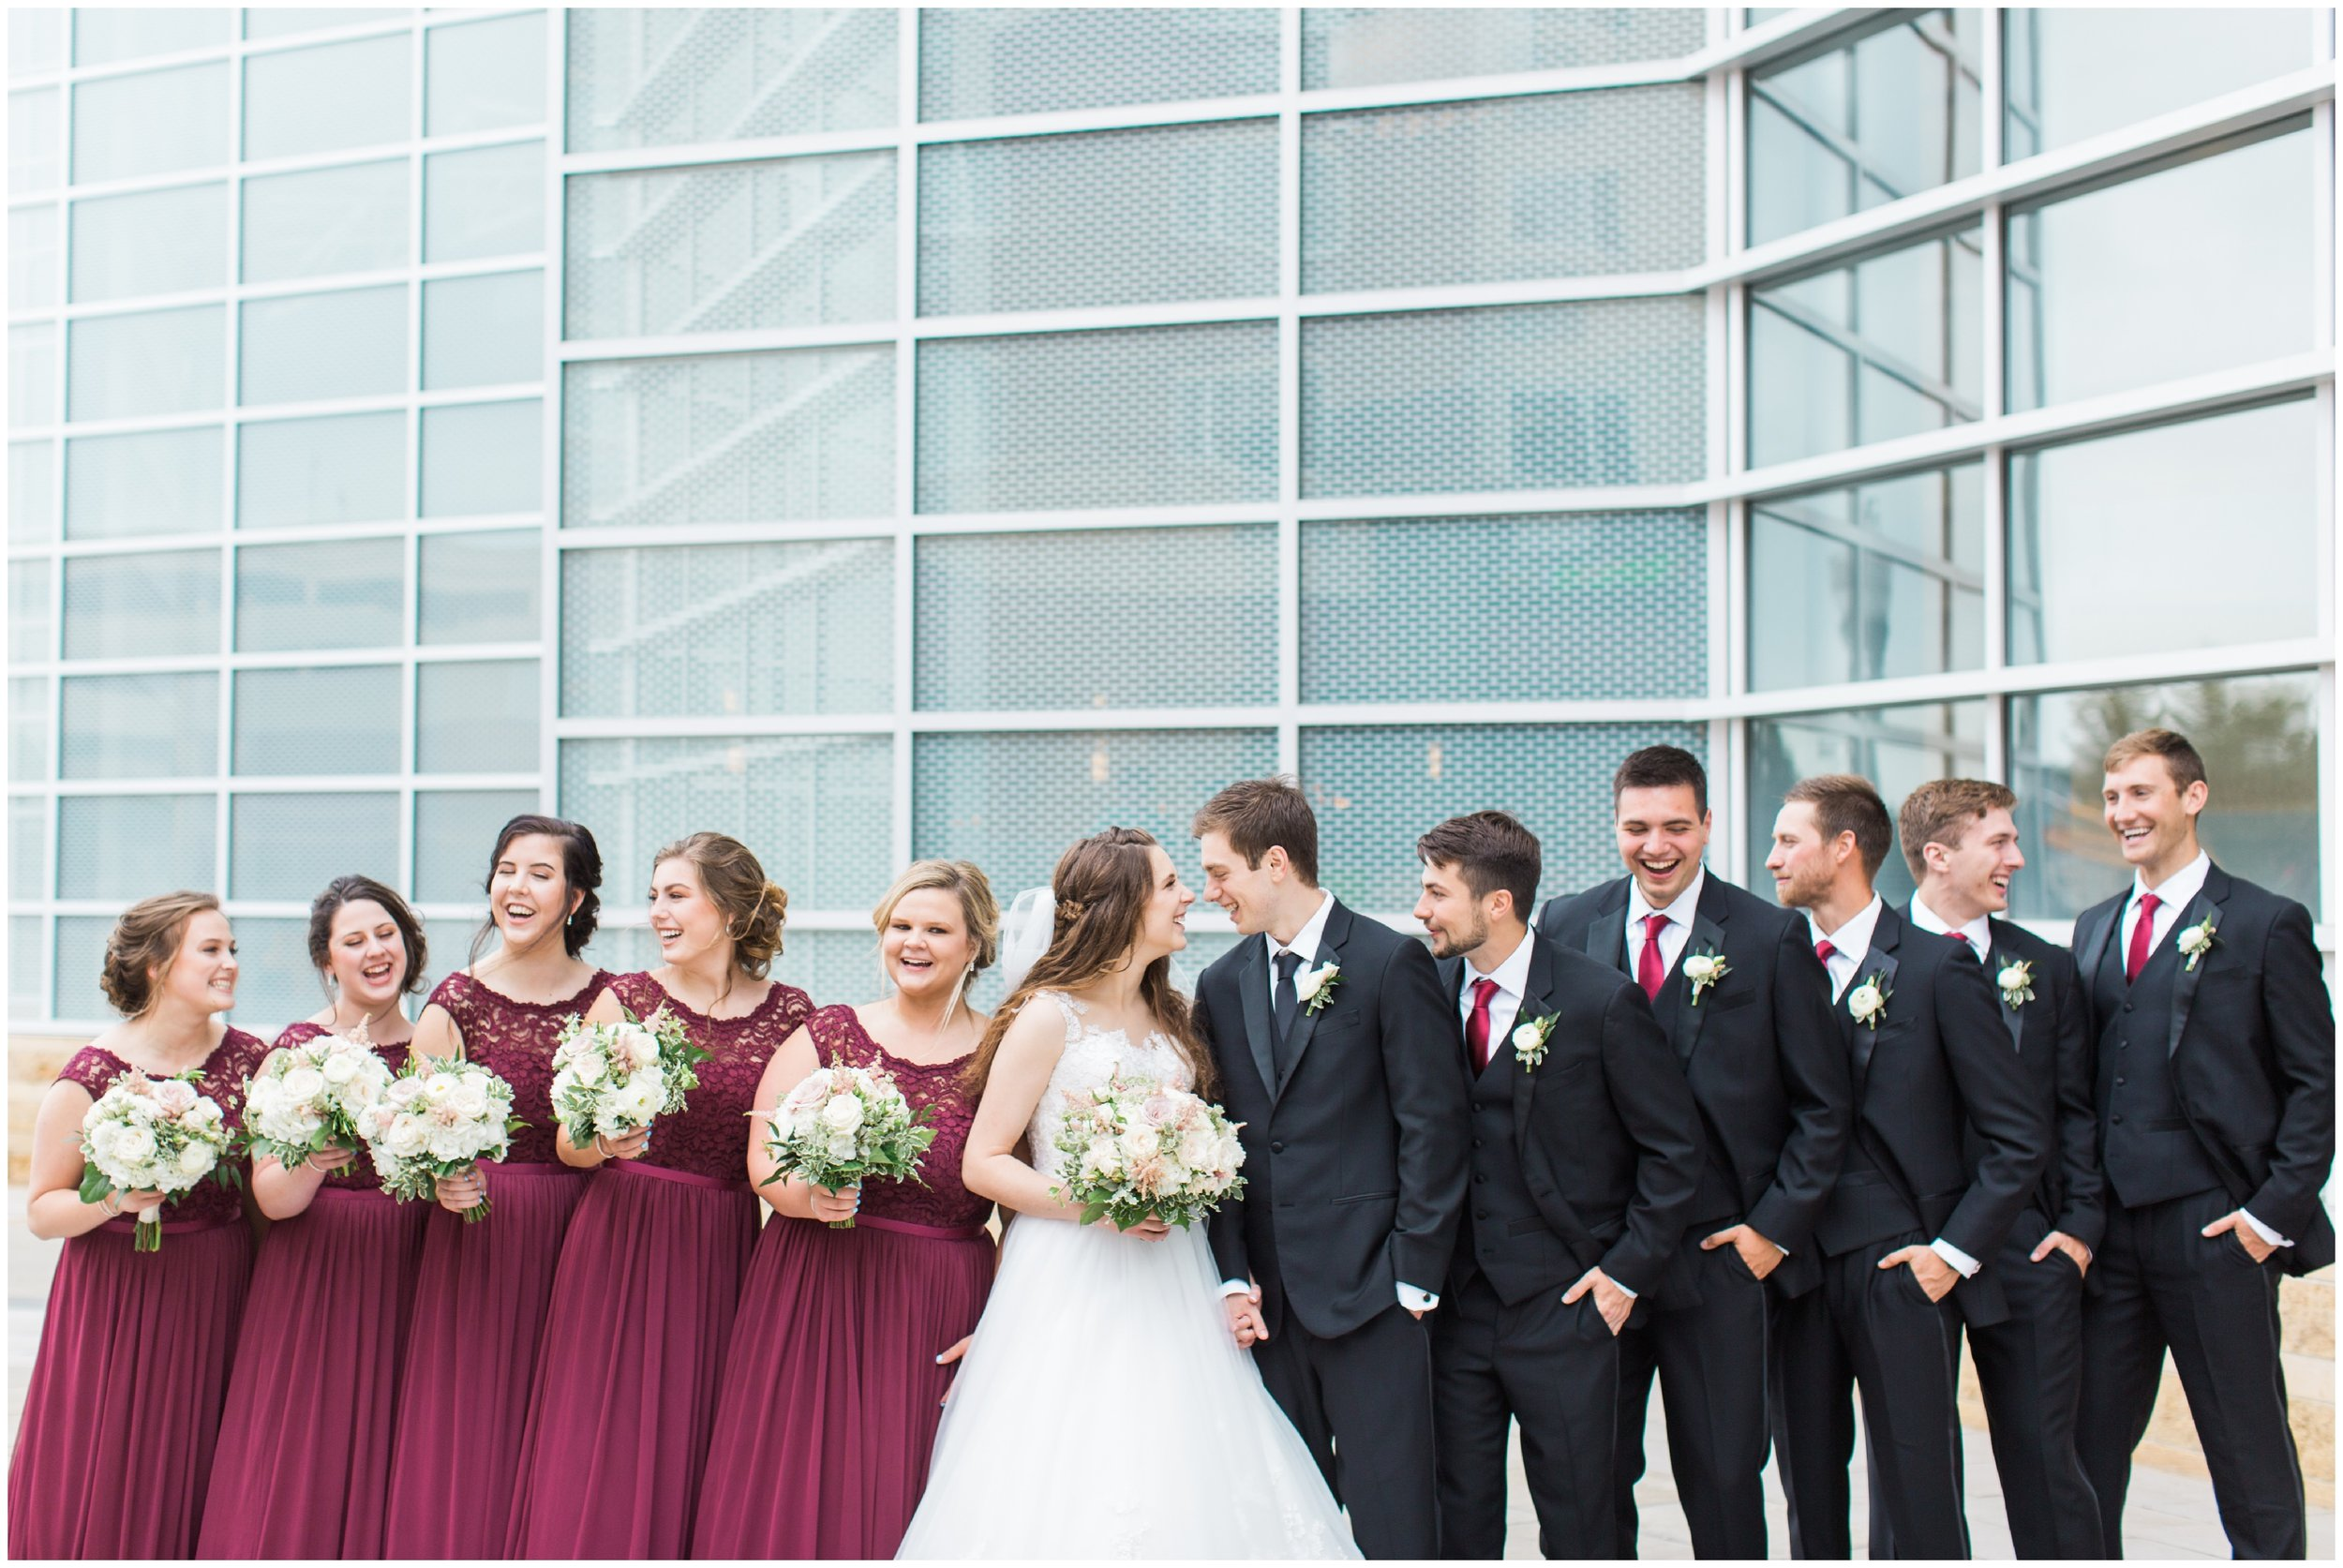 Grand_Wayne_ Center_Indiana_Wedding46.JPG